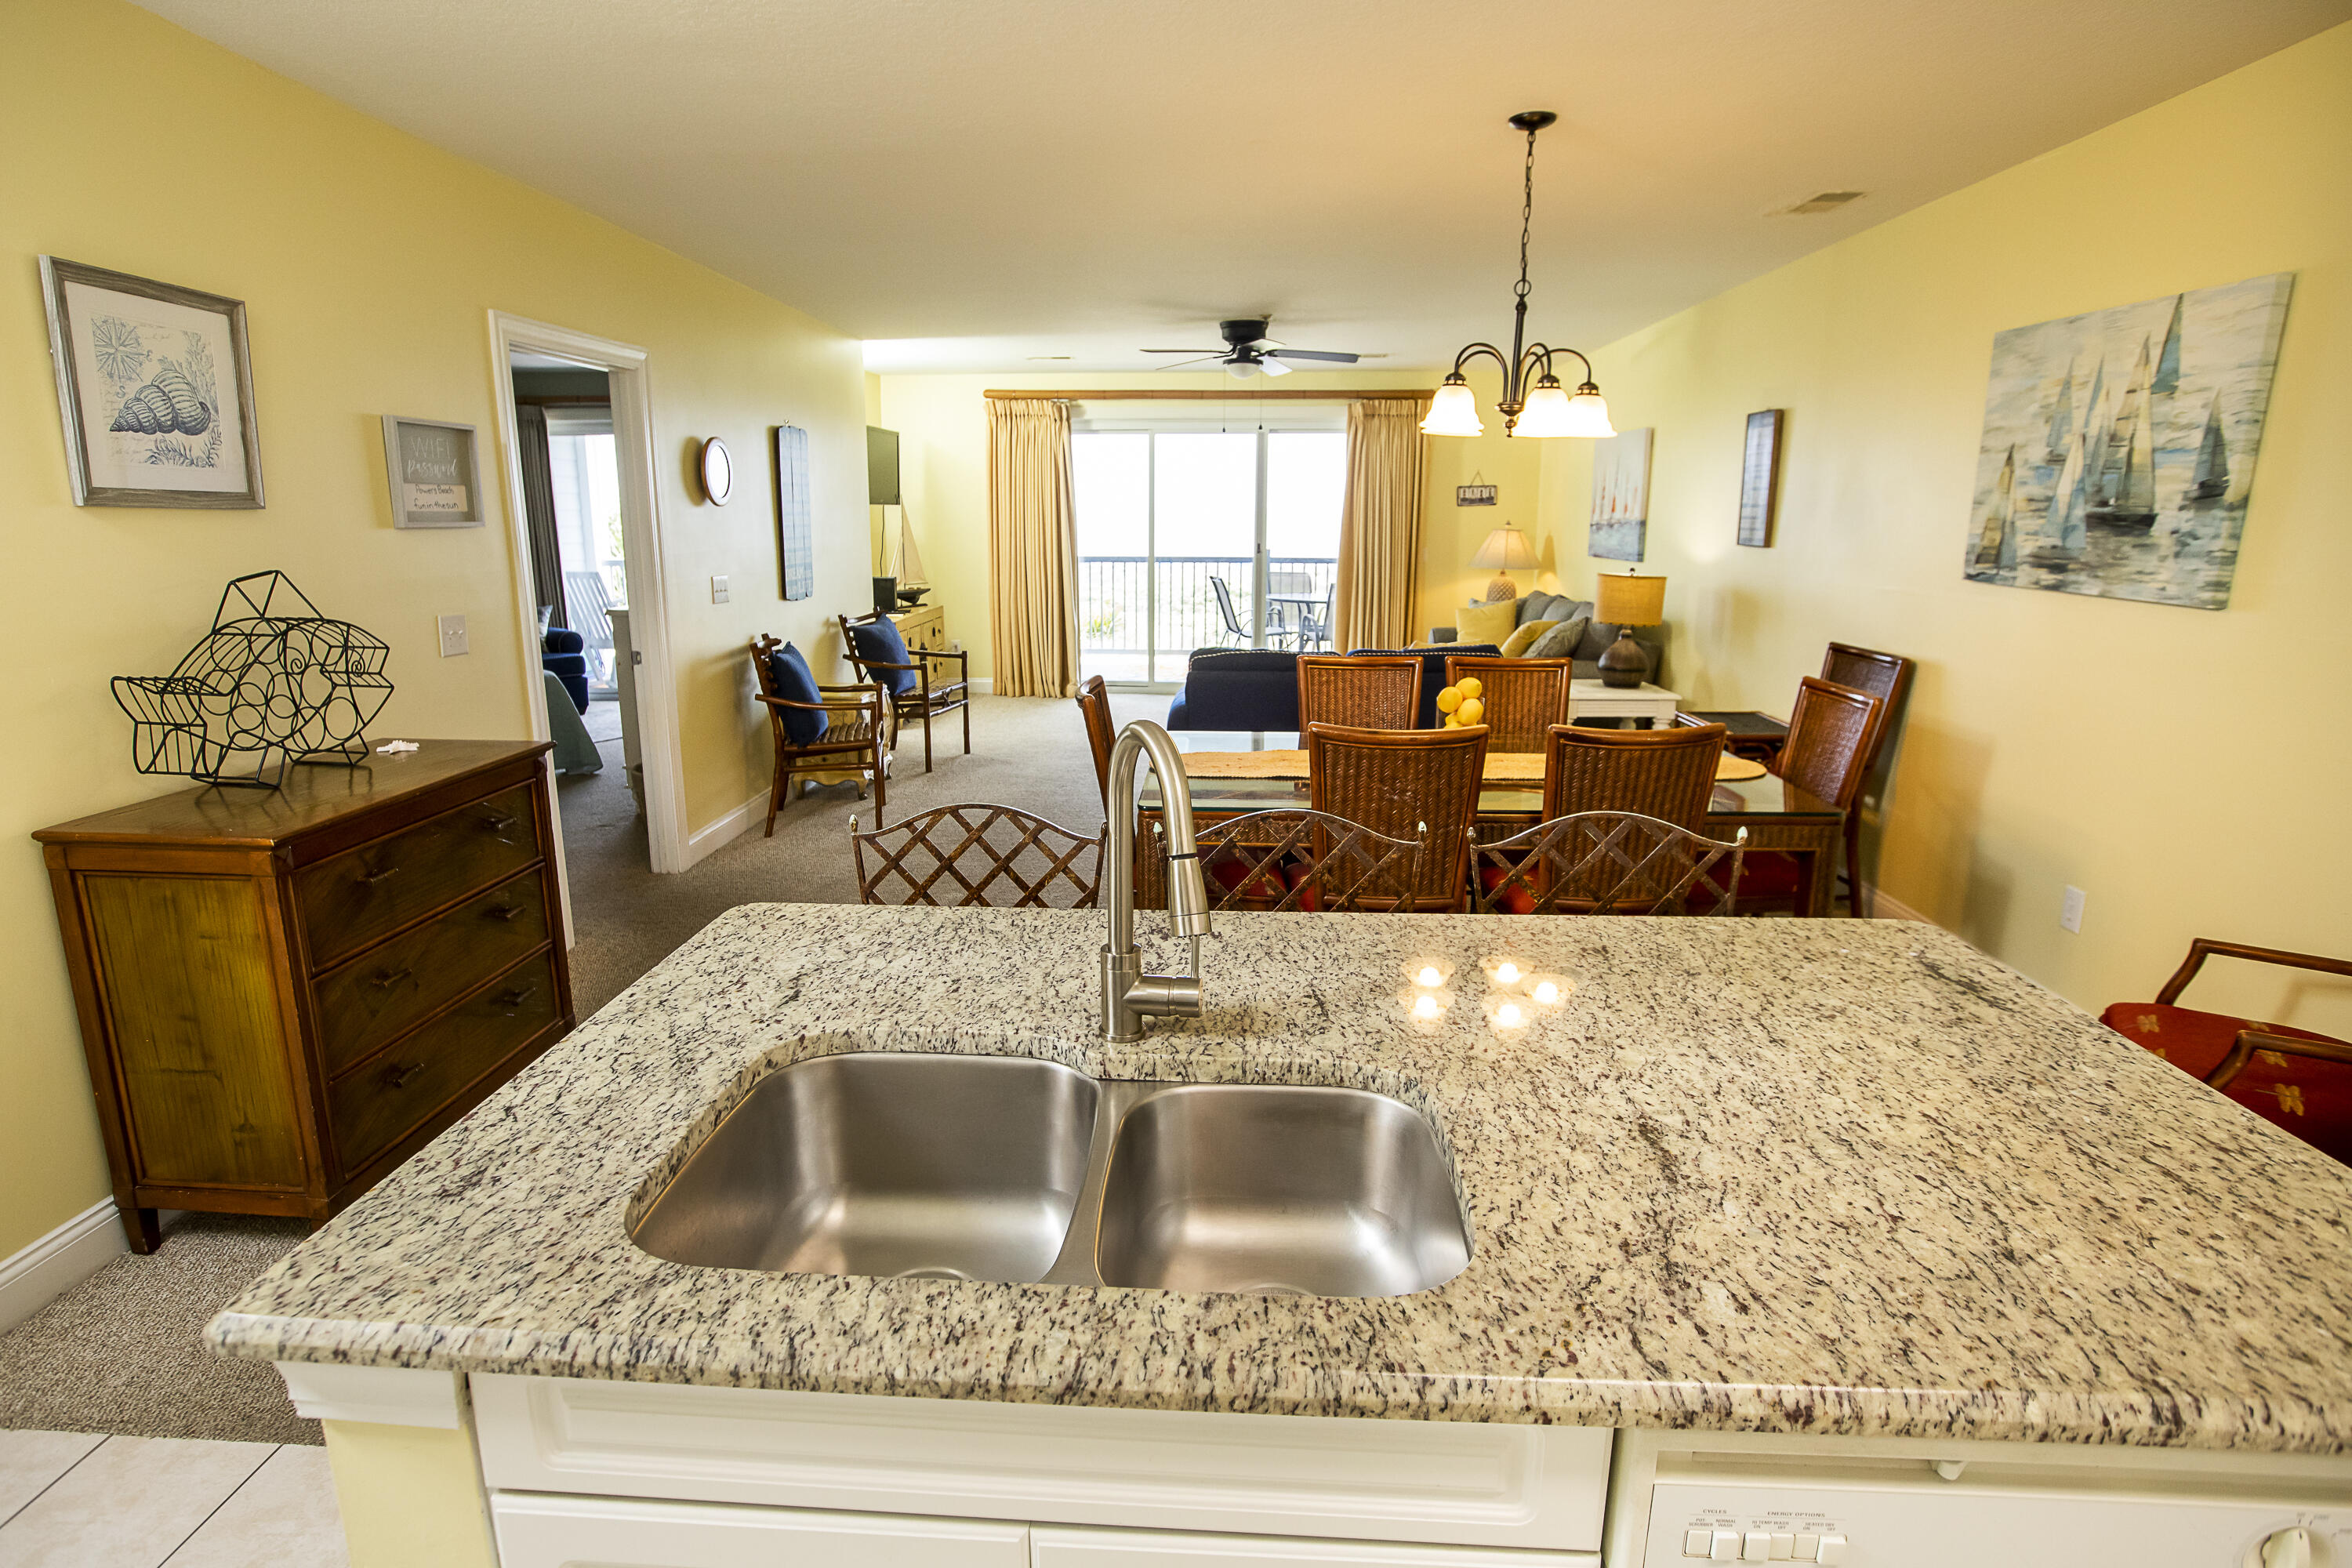 Isle of Palms Homes For Sale - 1140 Ocean, Isle of Palms, SC - 19